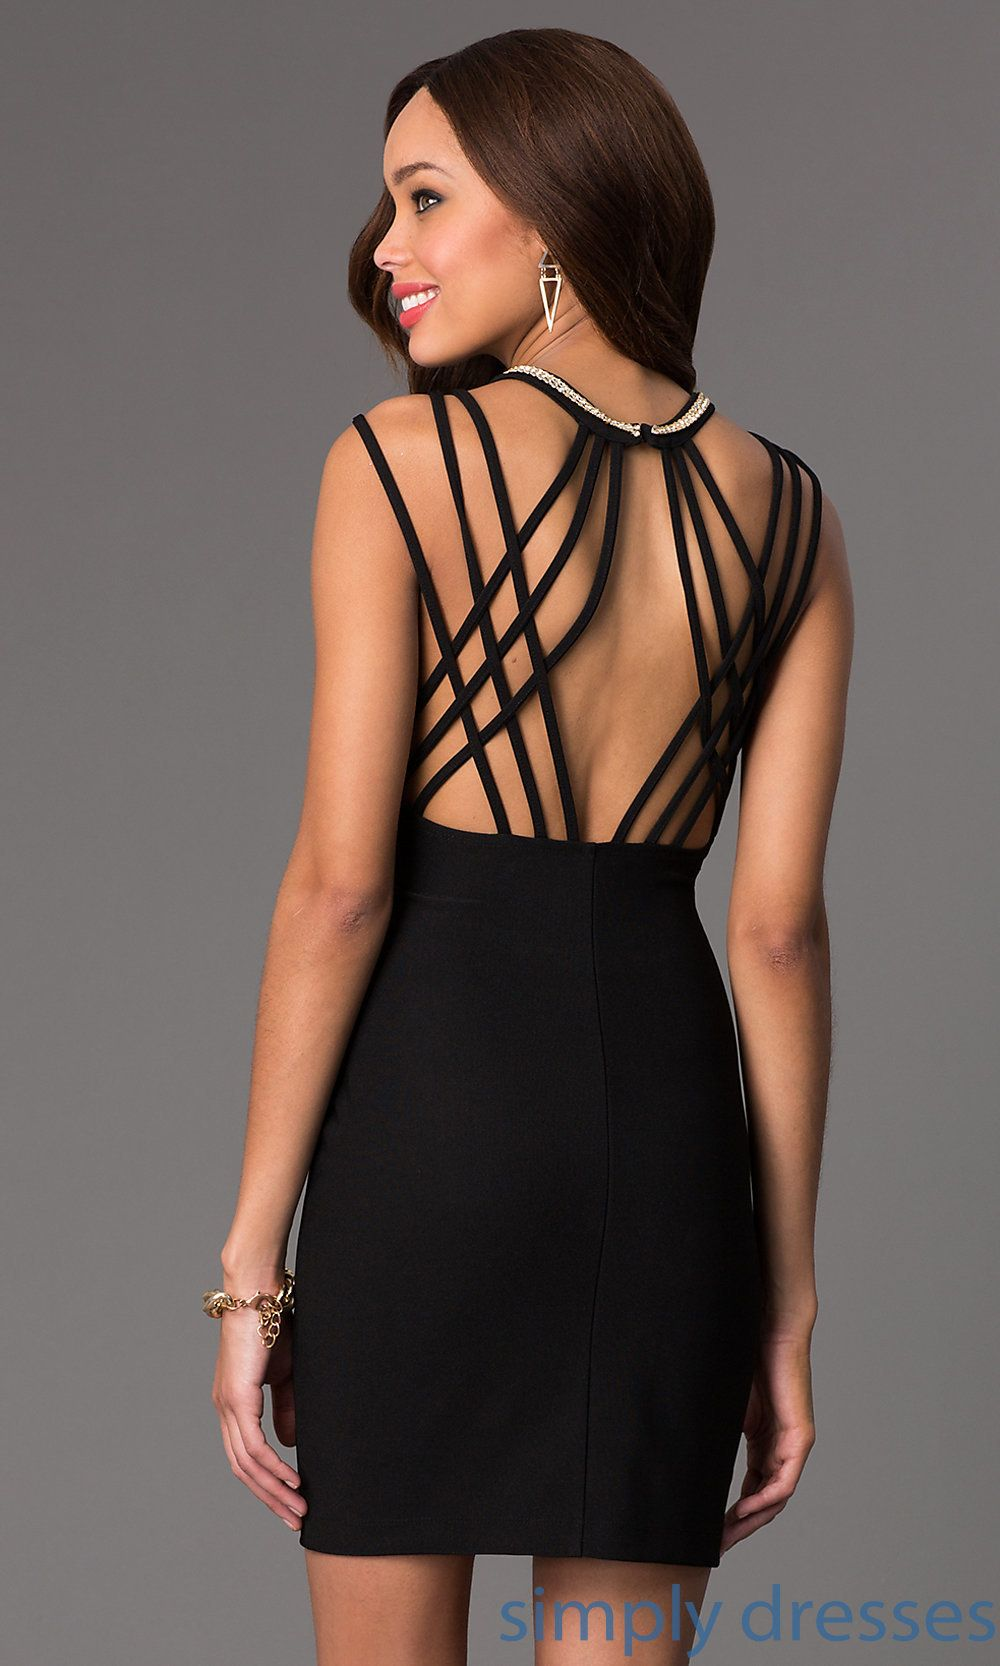 Strappy back black emerald sundae cocktail dress black party